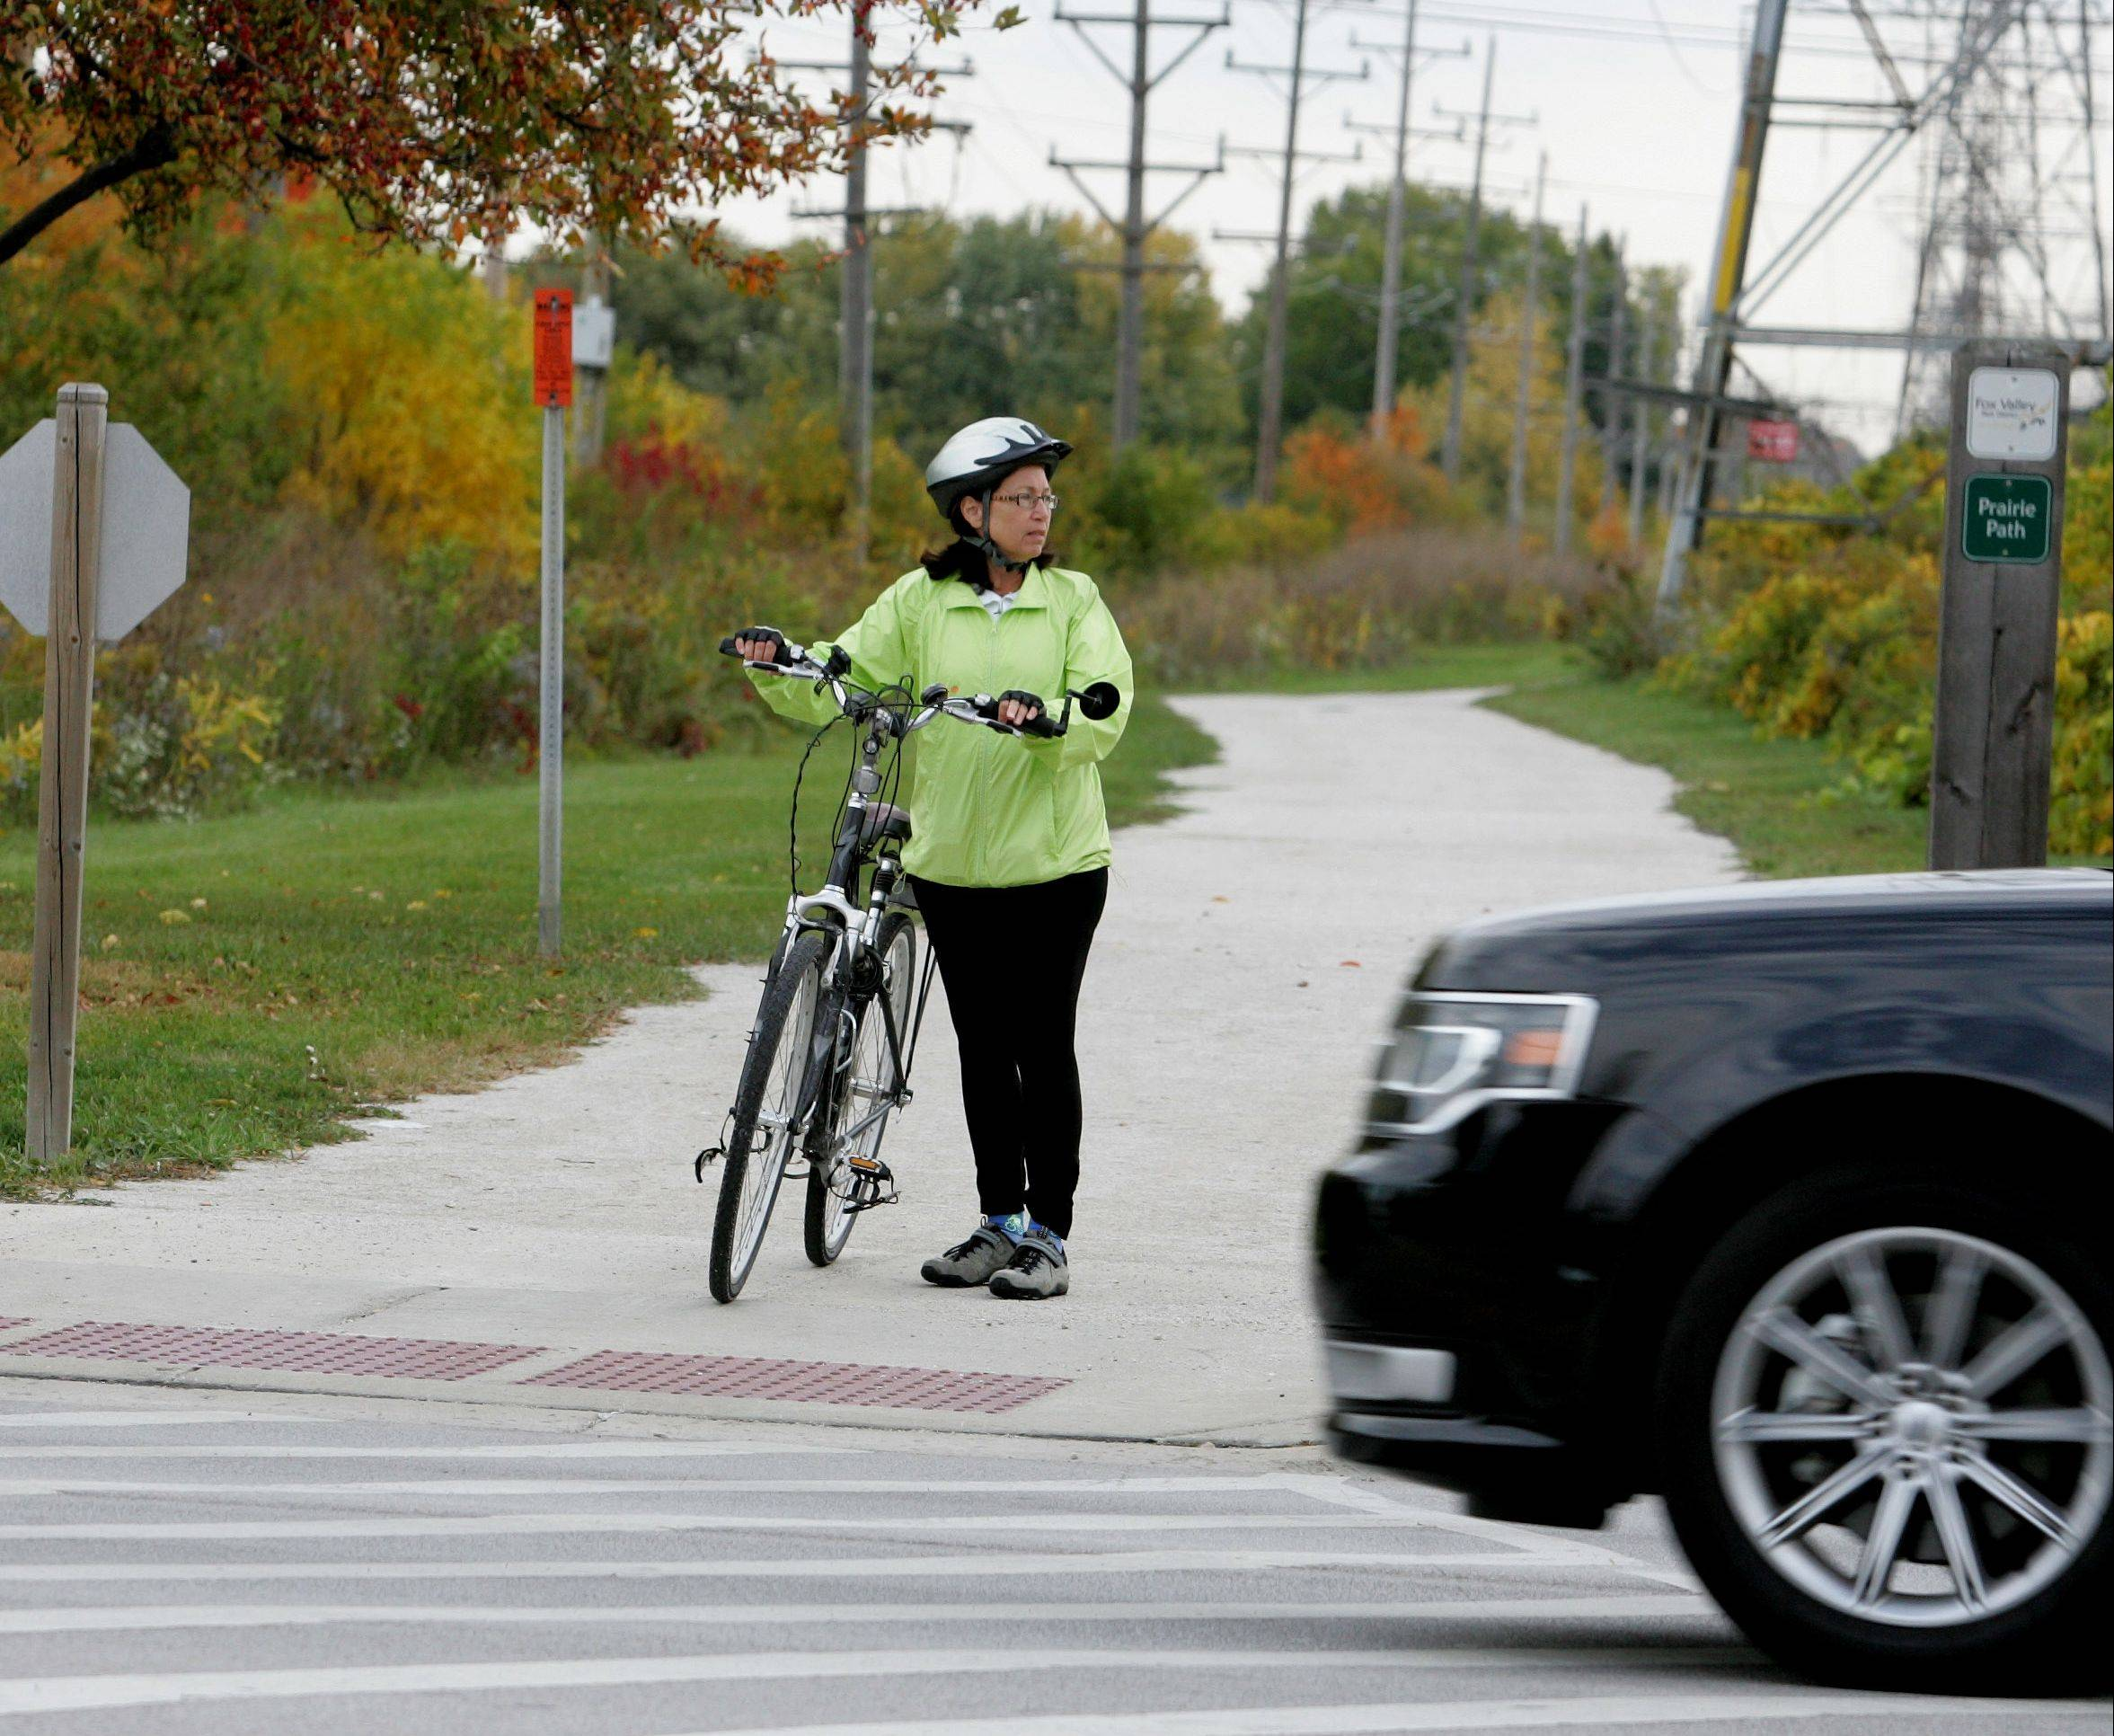 Lynn Mitchell of Sugar Grove waits to cross Farnsworth Avenue in Aurora on the Illinois Prairie Path. Two lighted signs will be installed at the crossing after Mitchell pushed for safety improvements.